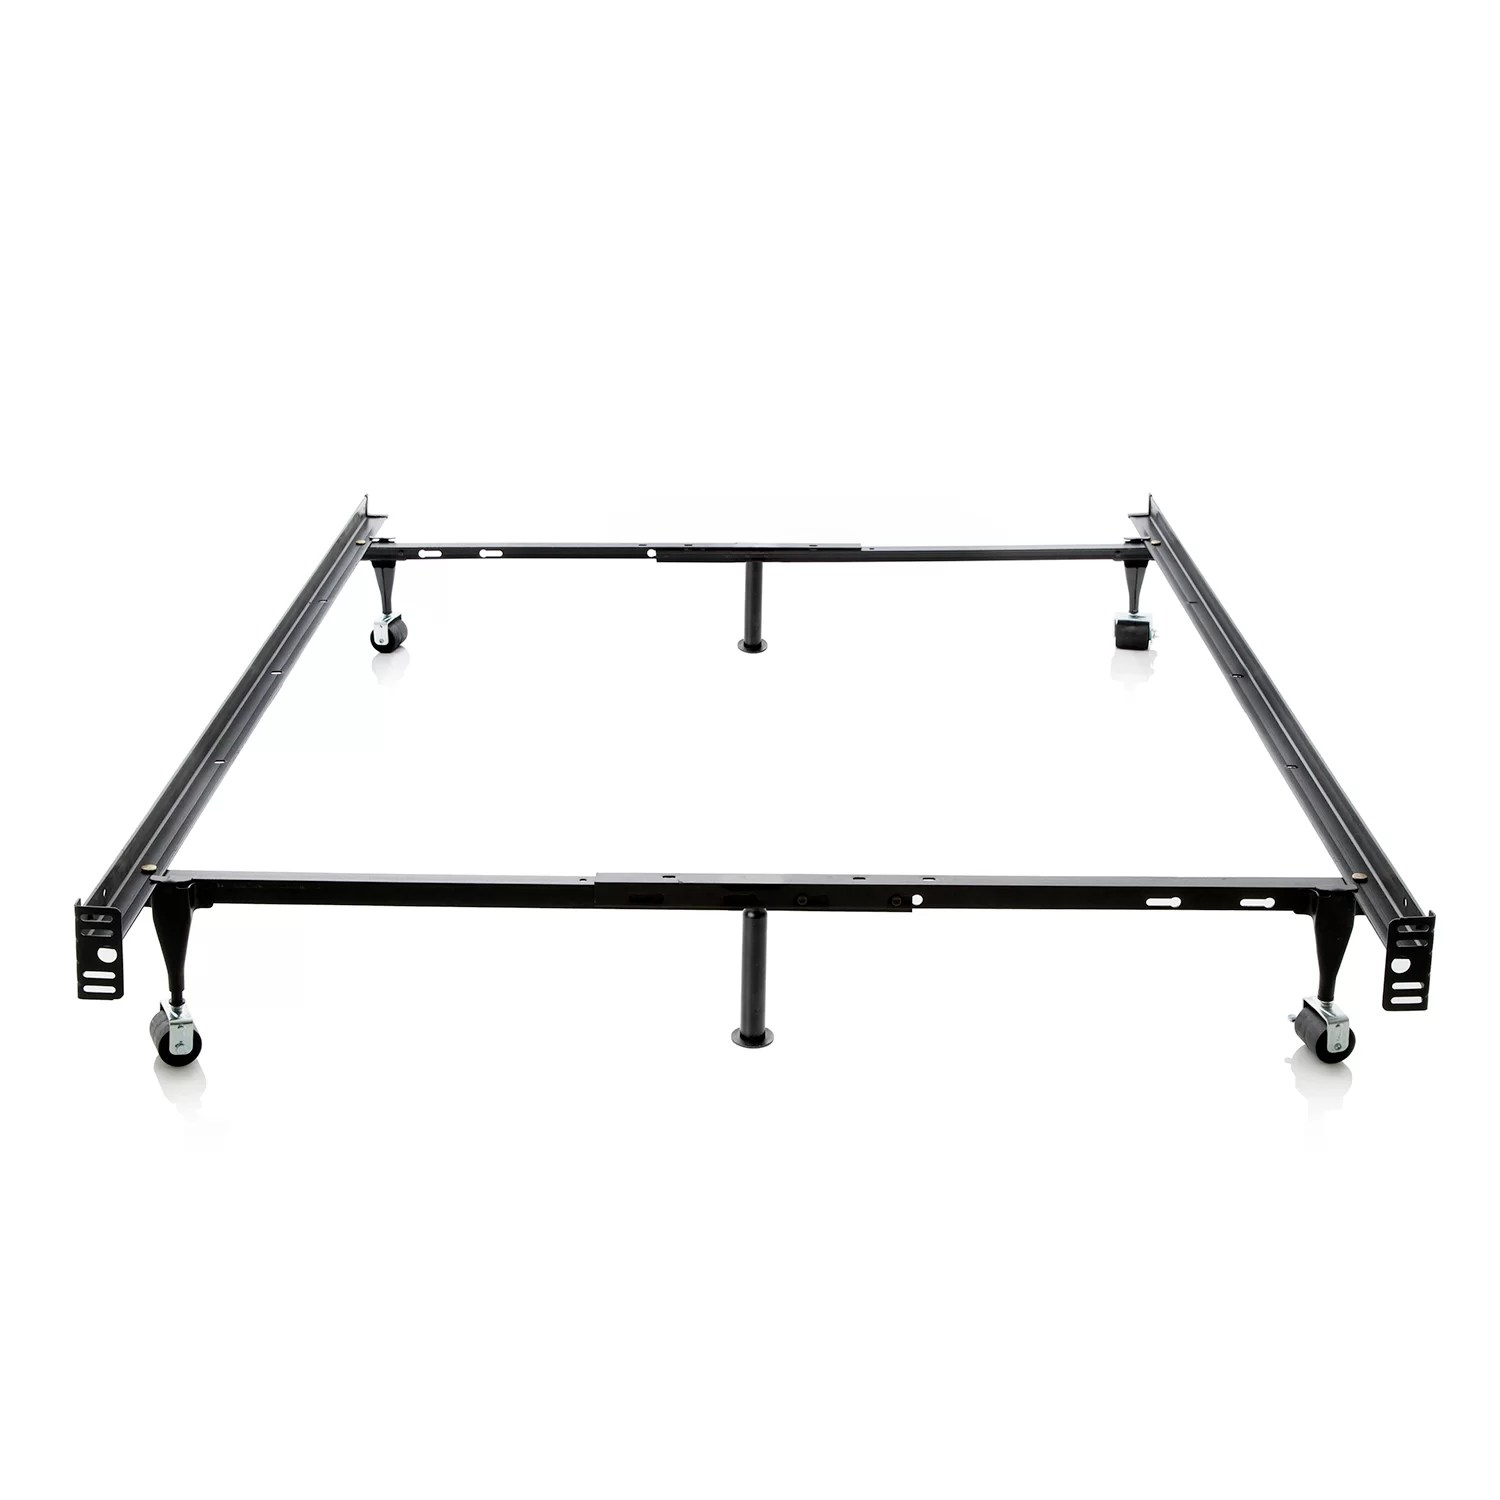 Malouf Heavy Duty 6 Leg Adjustable Metal Bed Frame With Rug Roller Amp Reviews